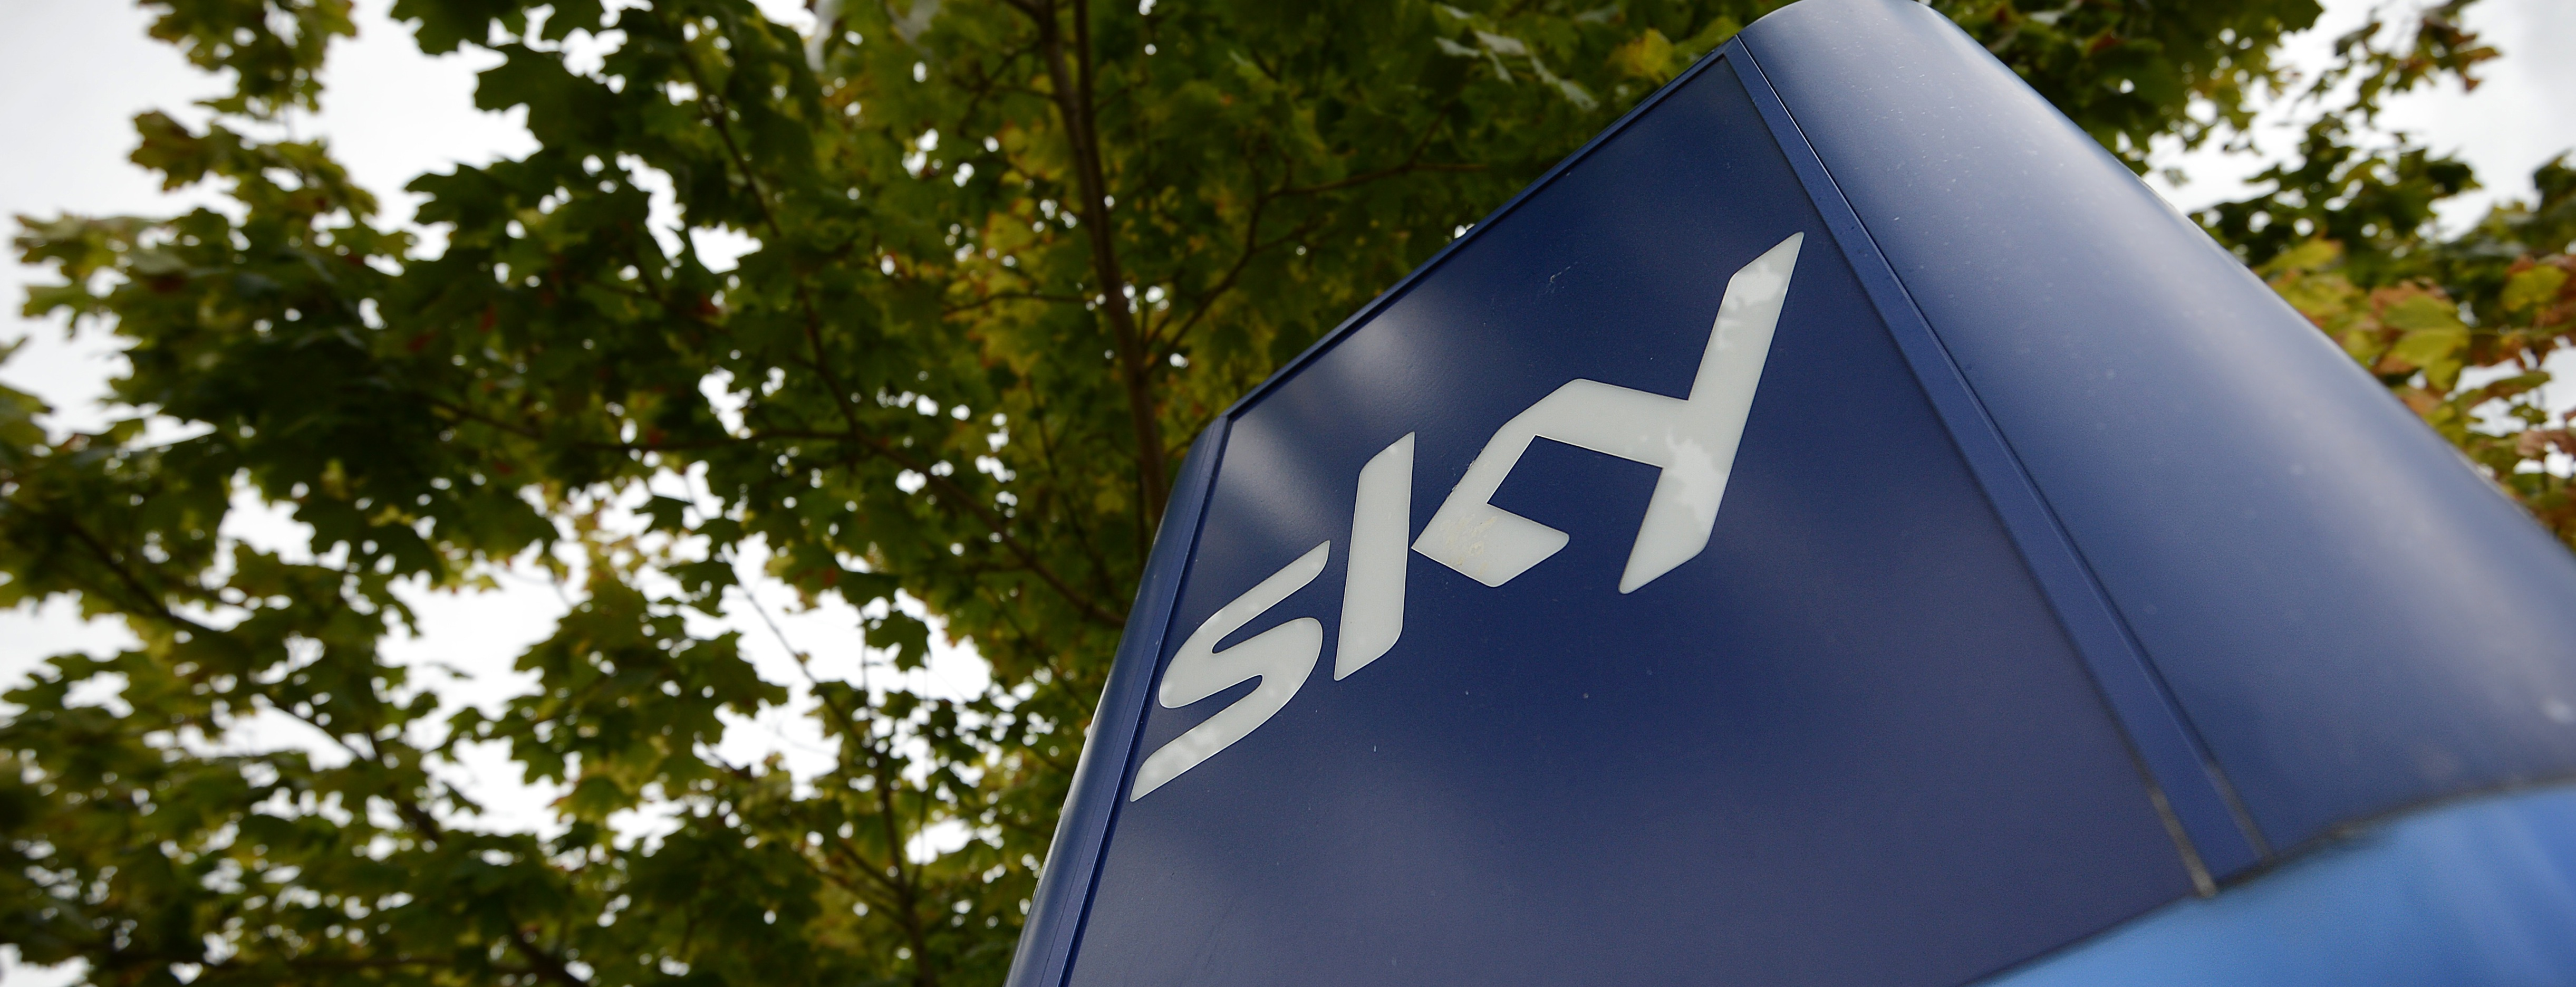 Sky is Launching a 'Buy and Keep' Movie Service